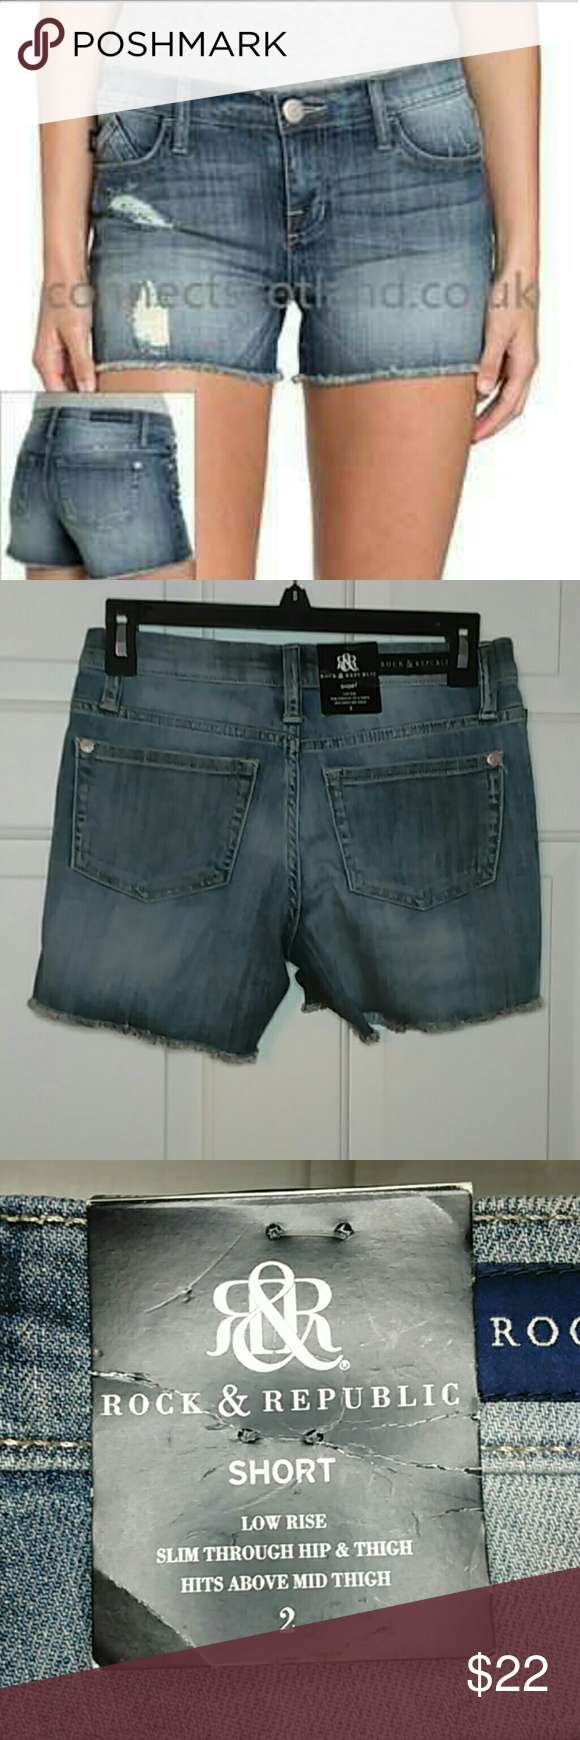 Rock & Republic distressed jean shorts Rock & Republic Hula Spirit Animal Destructed Jean Shorts. Low rise, slim thorough hip and thigh and the hem guys right above mid thigh. Rock & Republic Shorts Jean Shorts